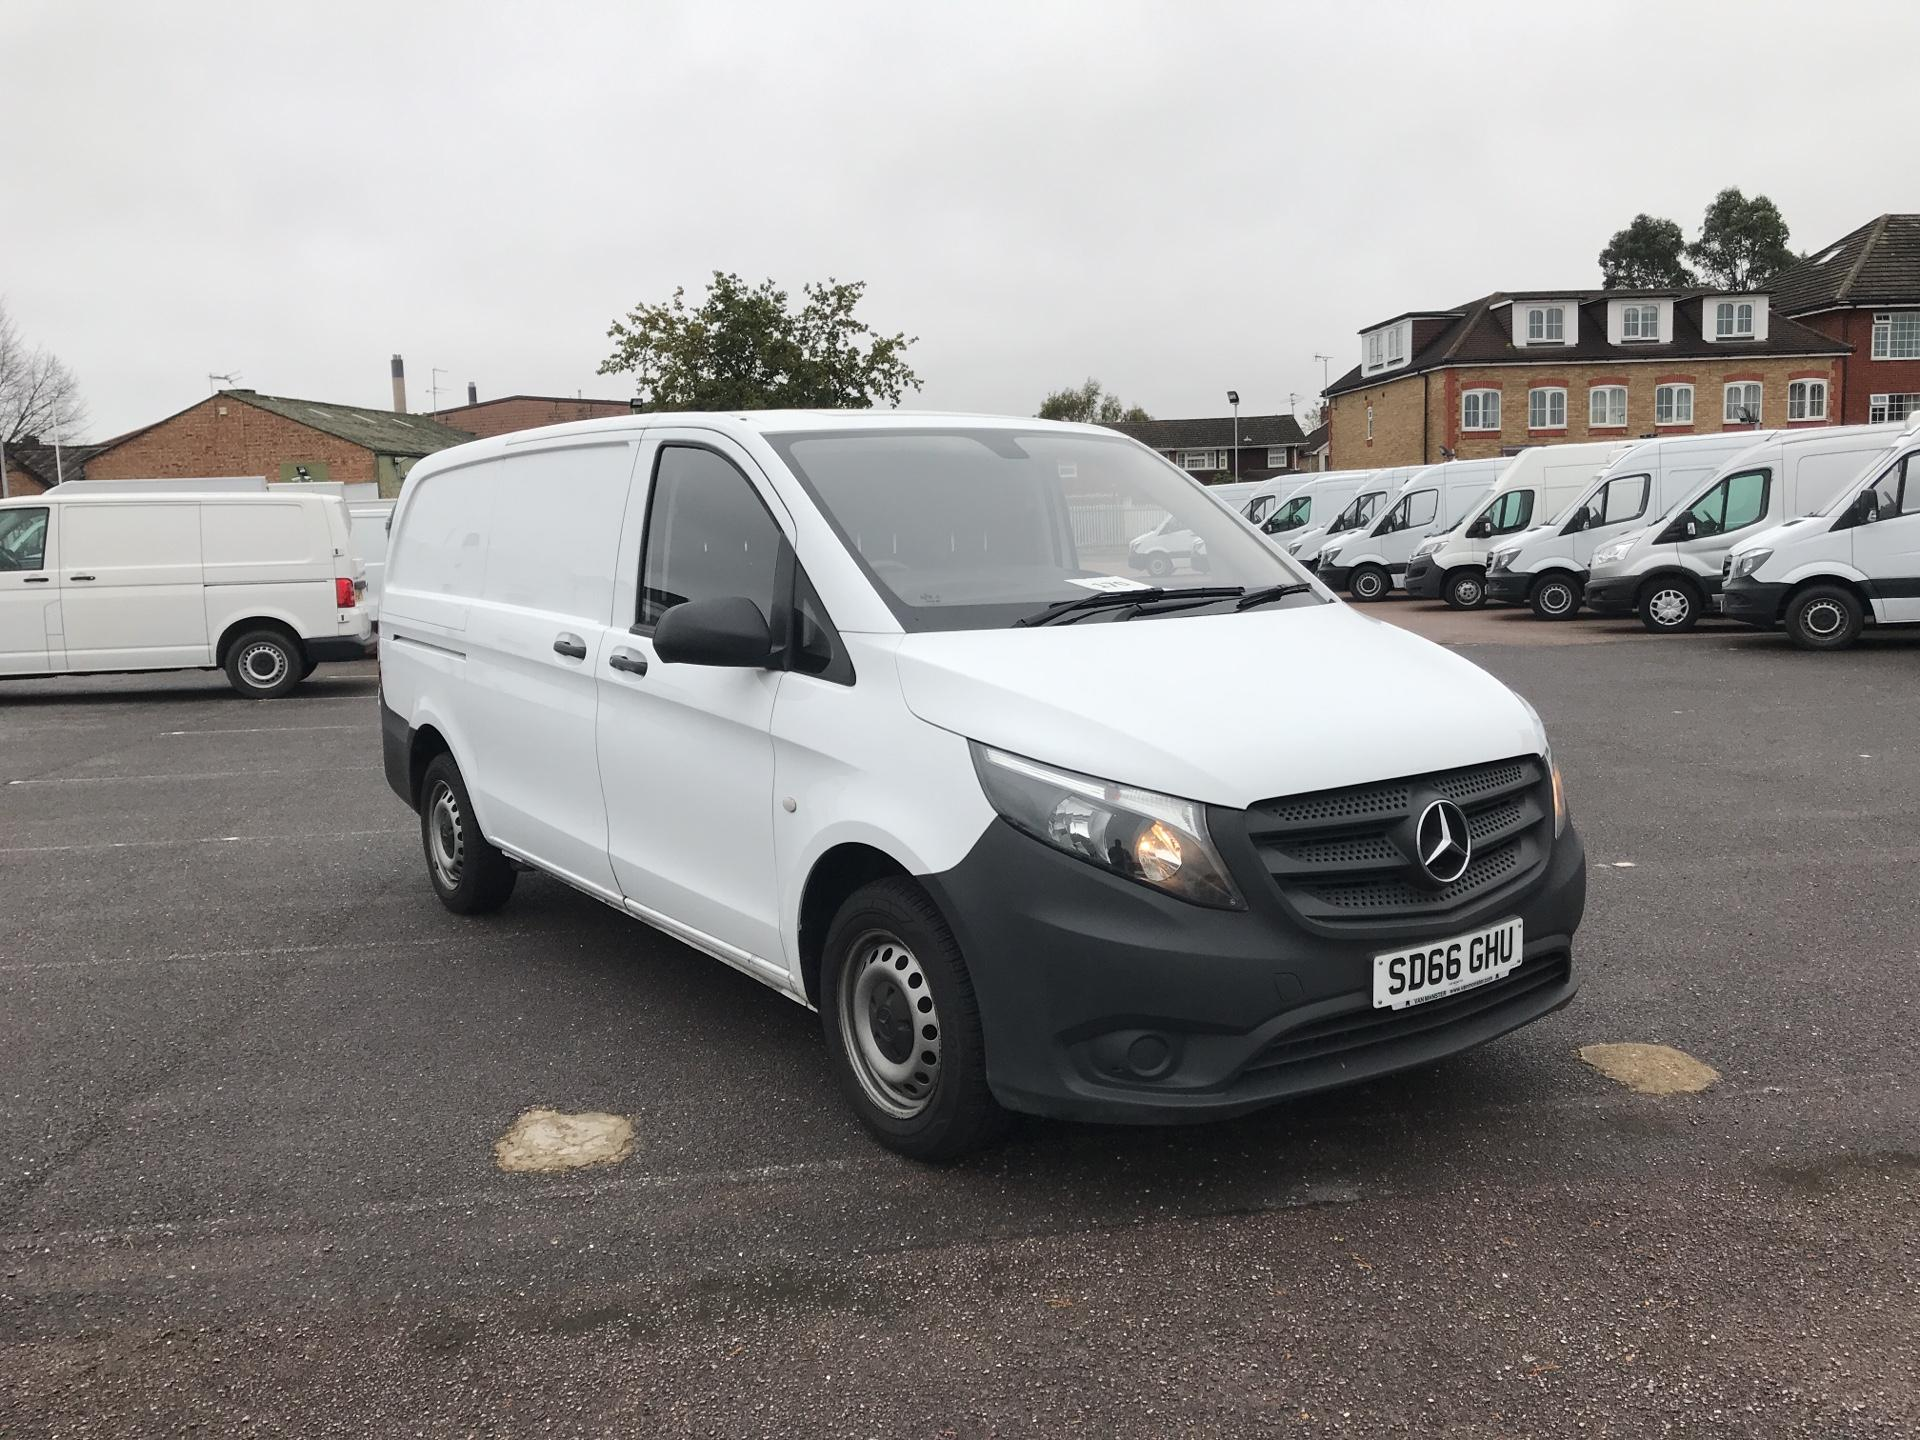 2016 Mercedes-Benz Vito  114 CDI LONG BLUETEC EURO 5/6 (SD66GHU)